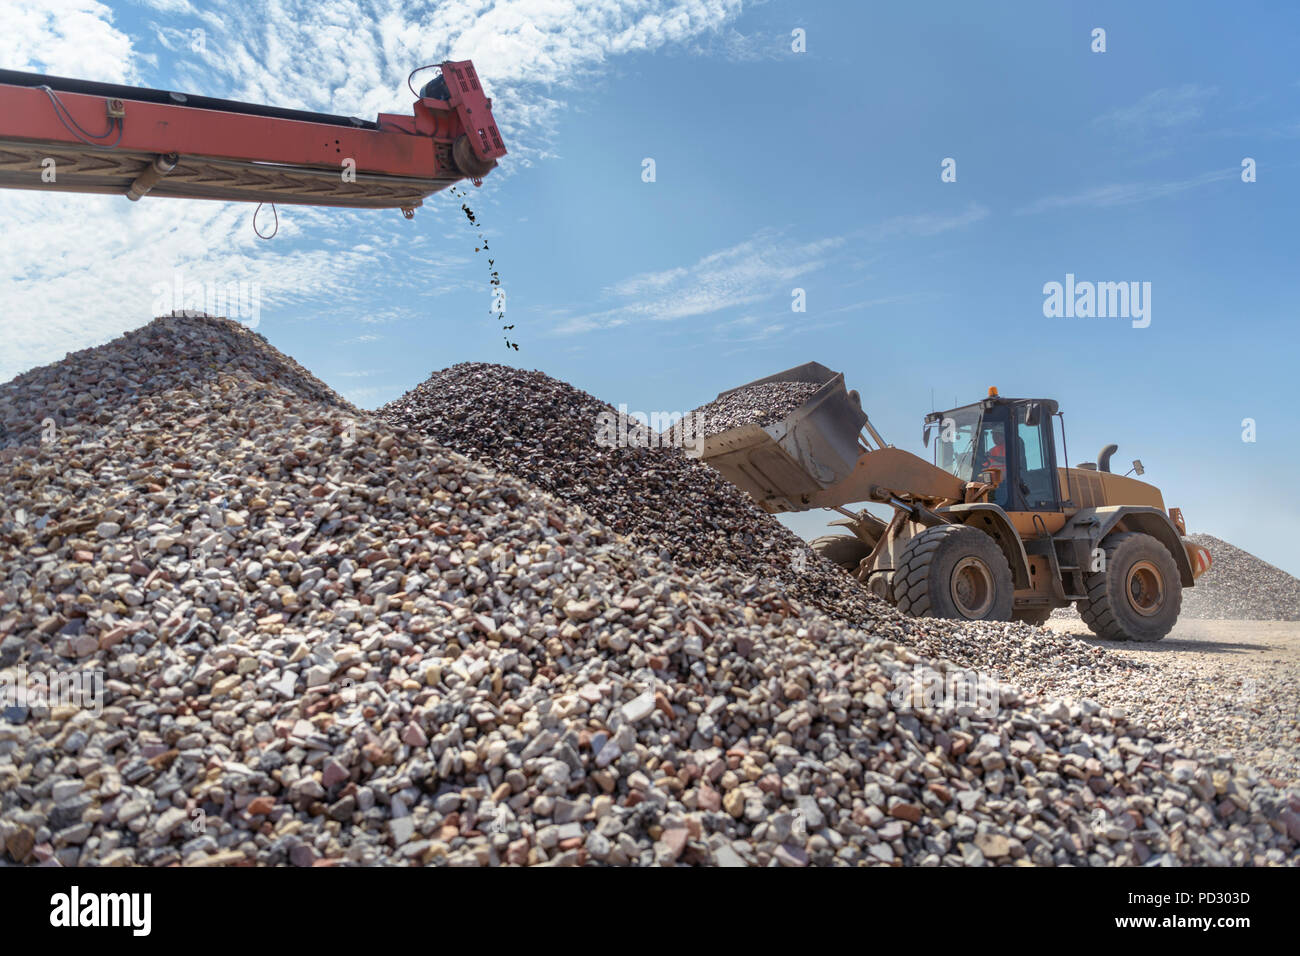 Digger with screened and crushed concrete in concrete recycling site - Stock Image